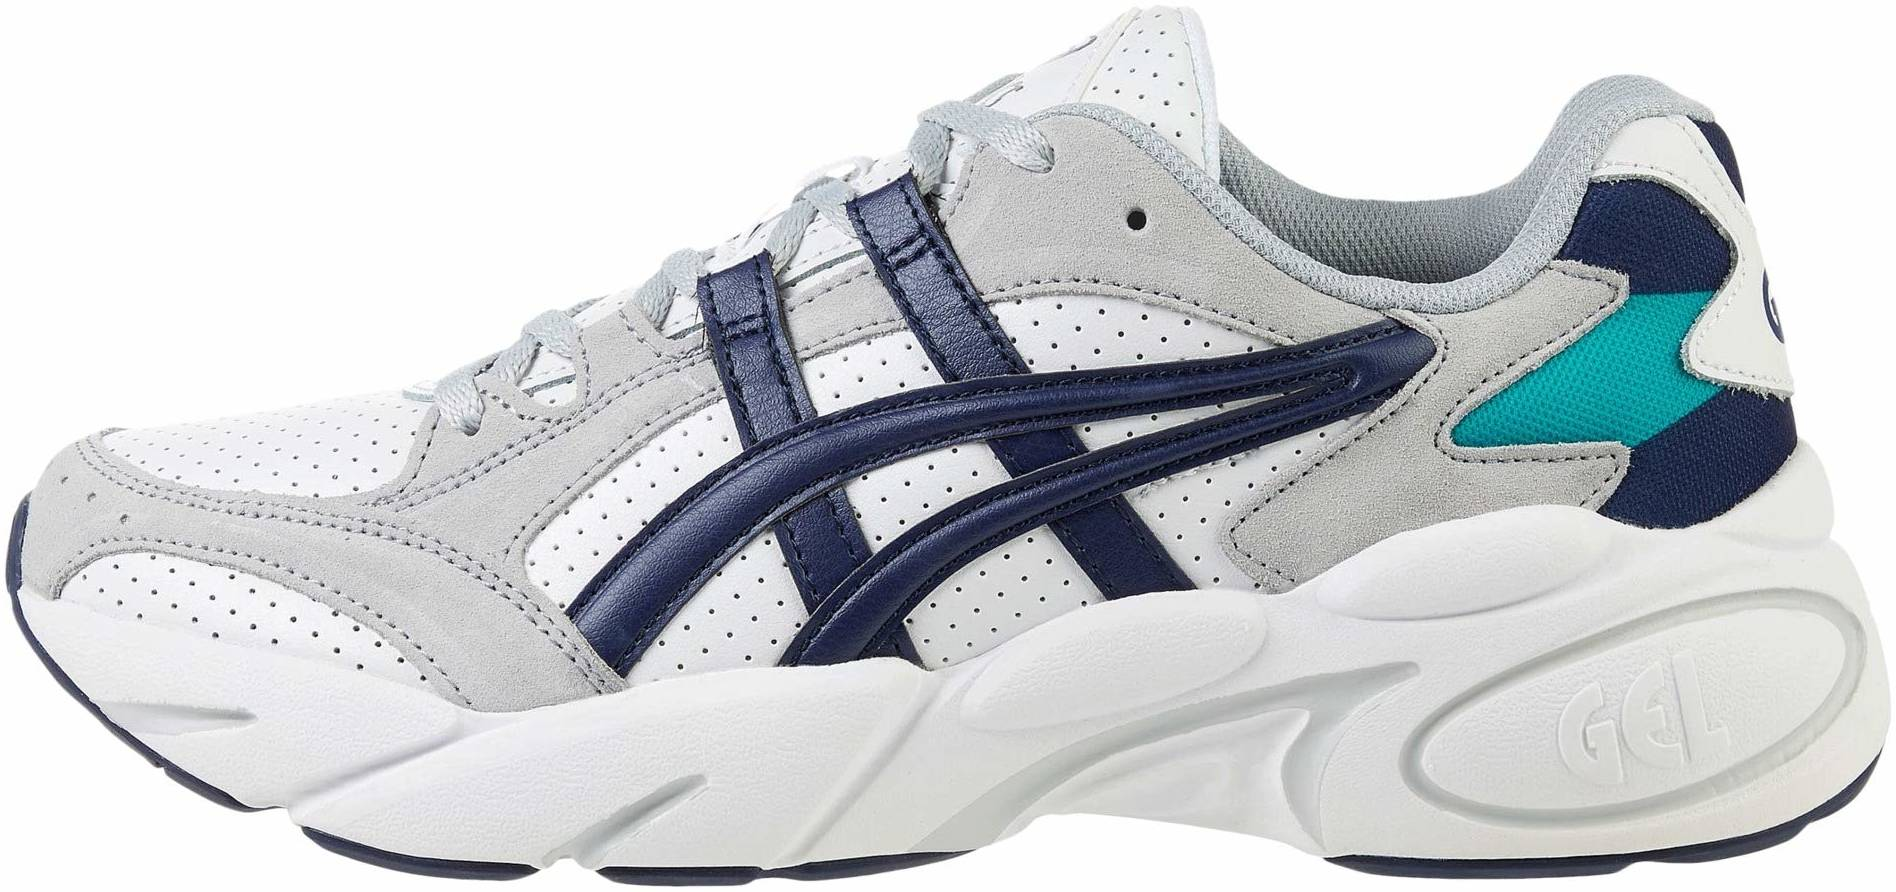 Only $22 + Review of Asics Gel BND